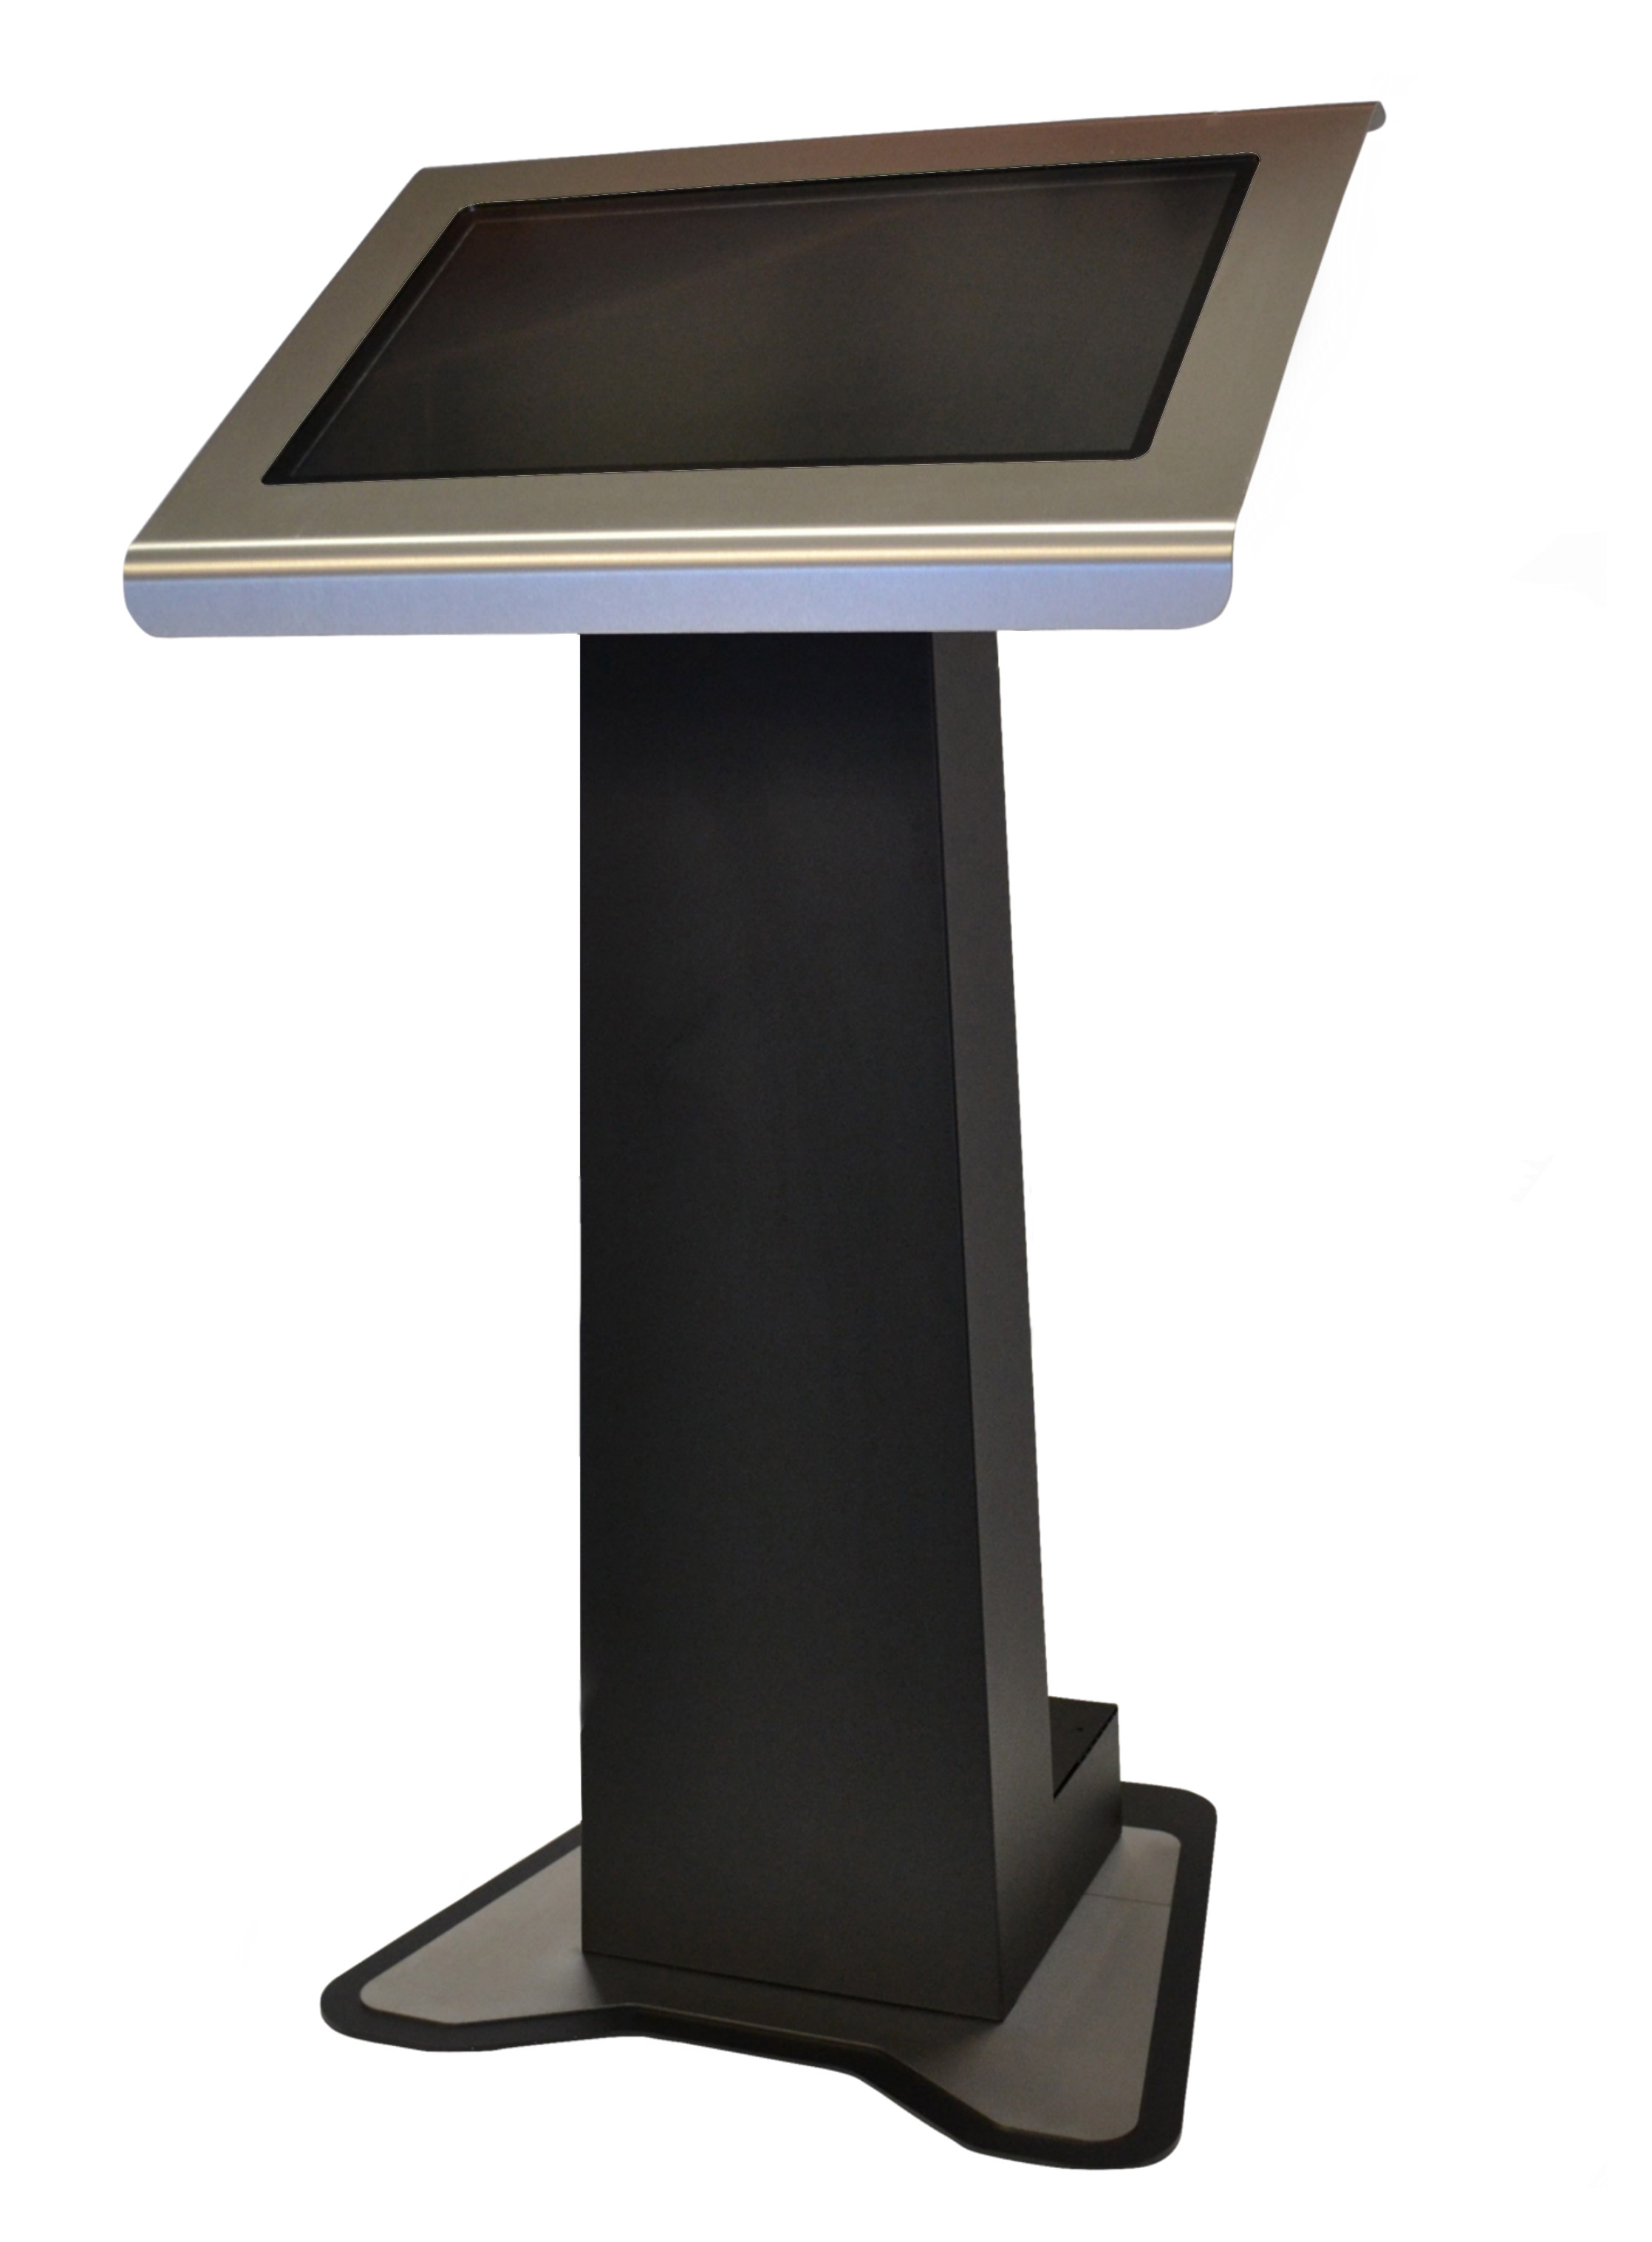 Nemacom Pure Kiosk Industrial Touchscreen Displays, Industrial PCs & Panel PCs